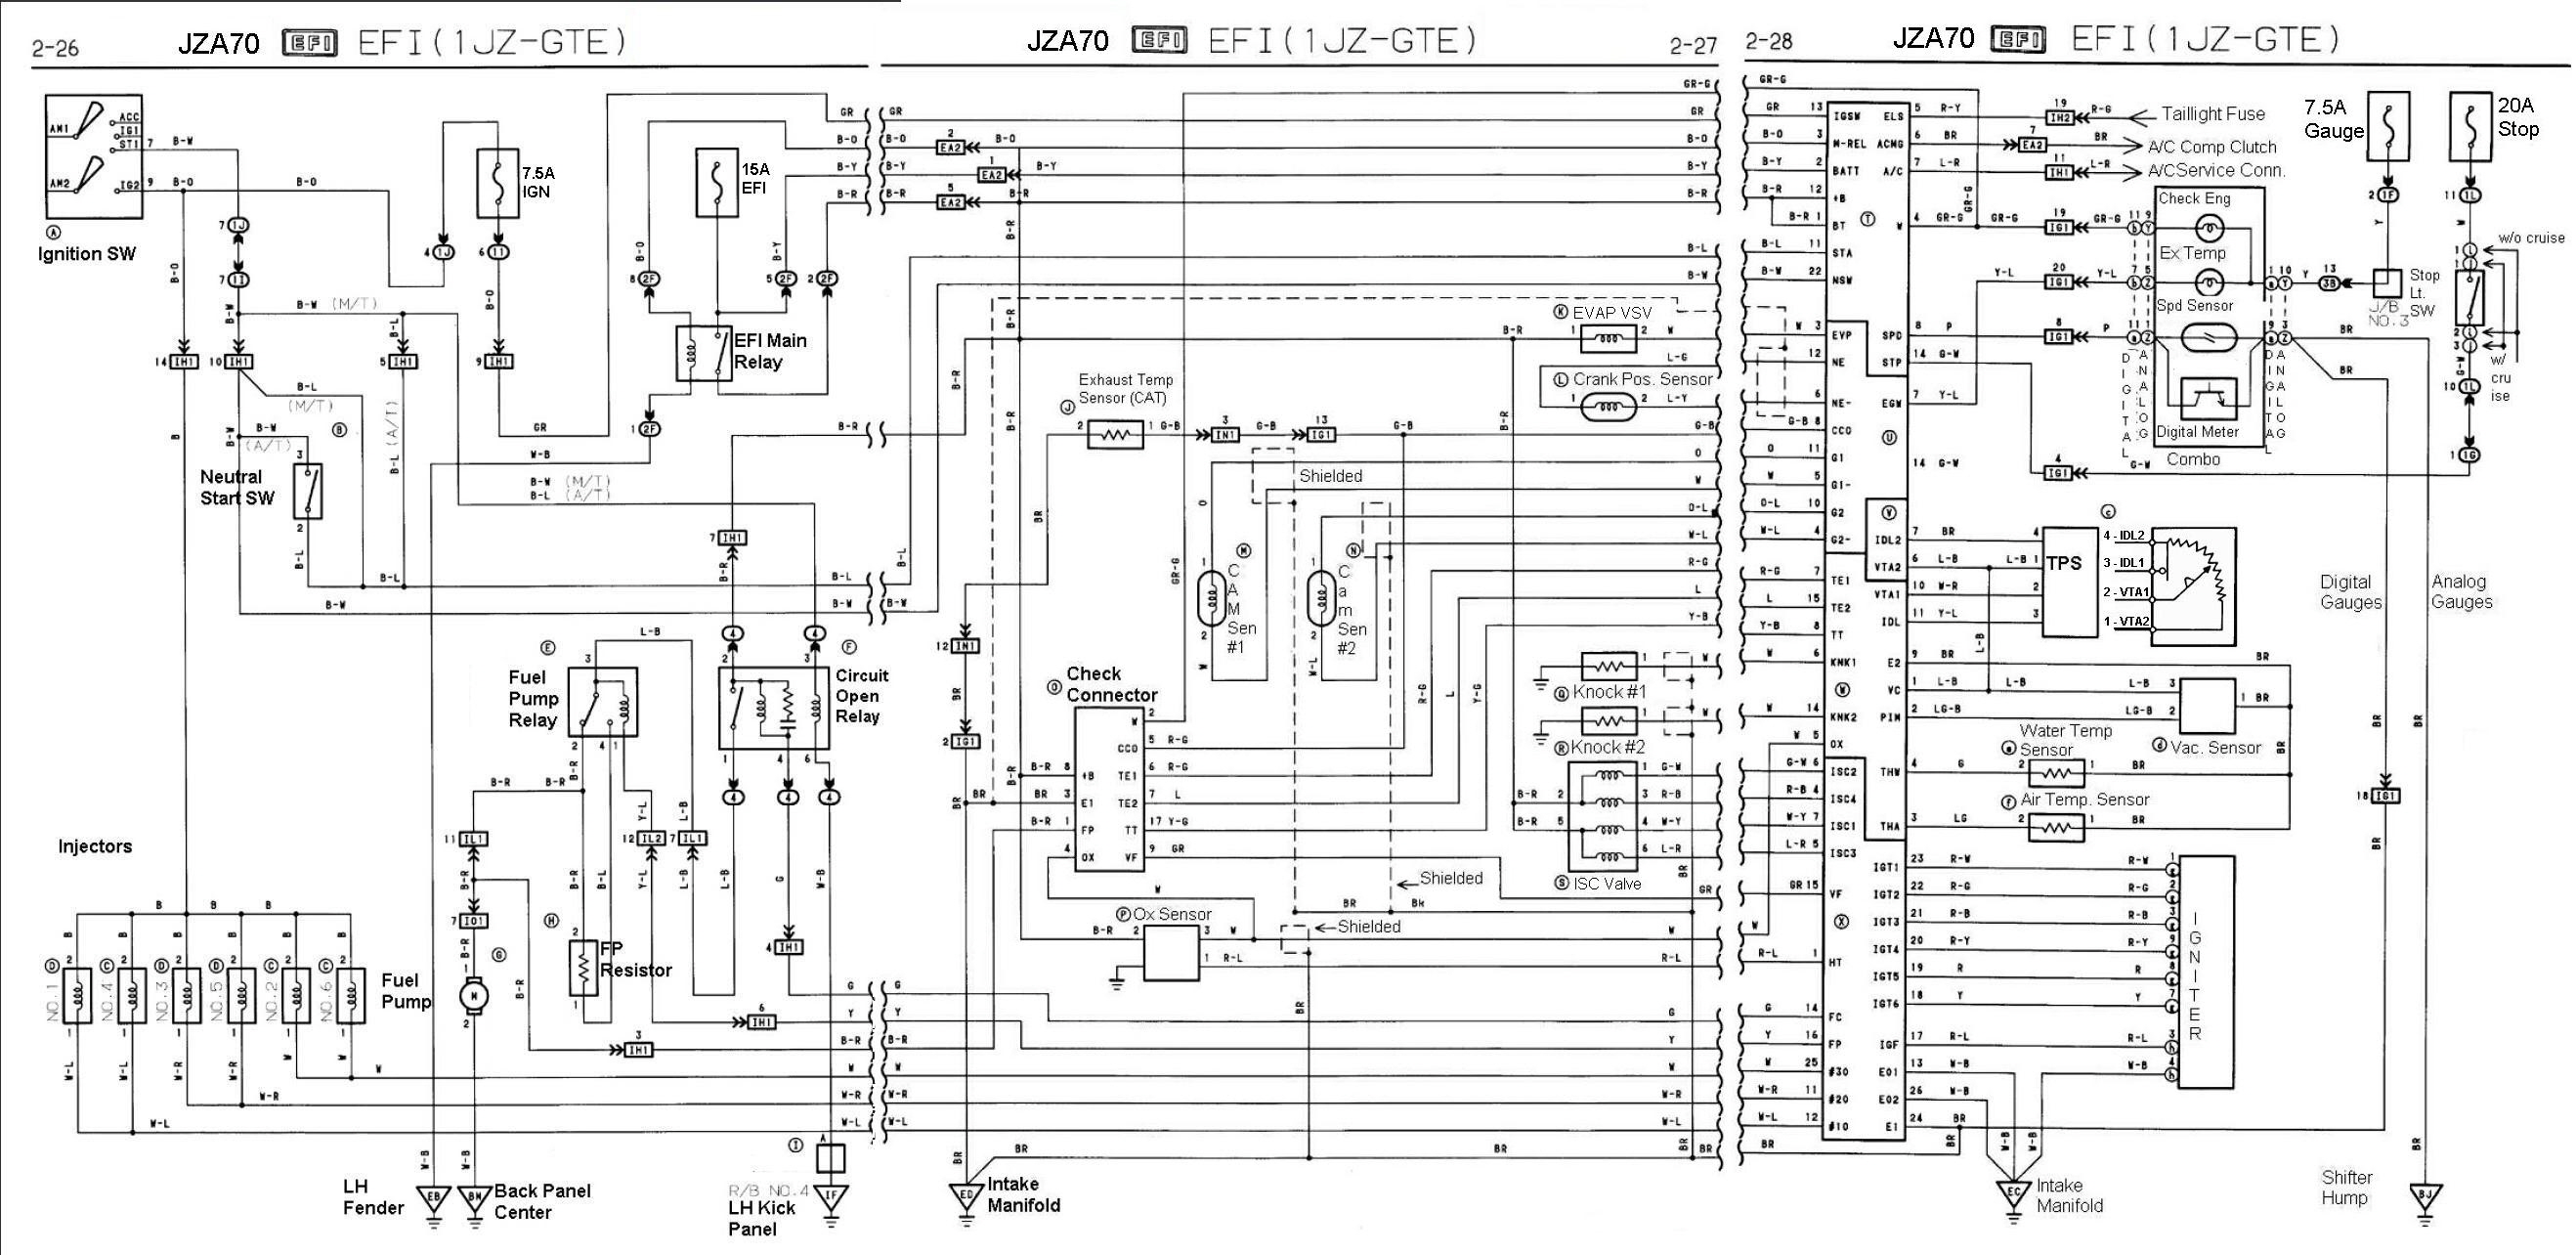 1jz wiring rh clickdesign co uk 1jz ecu wiring diagram 1jzgte wiring diagram pdf